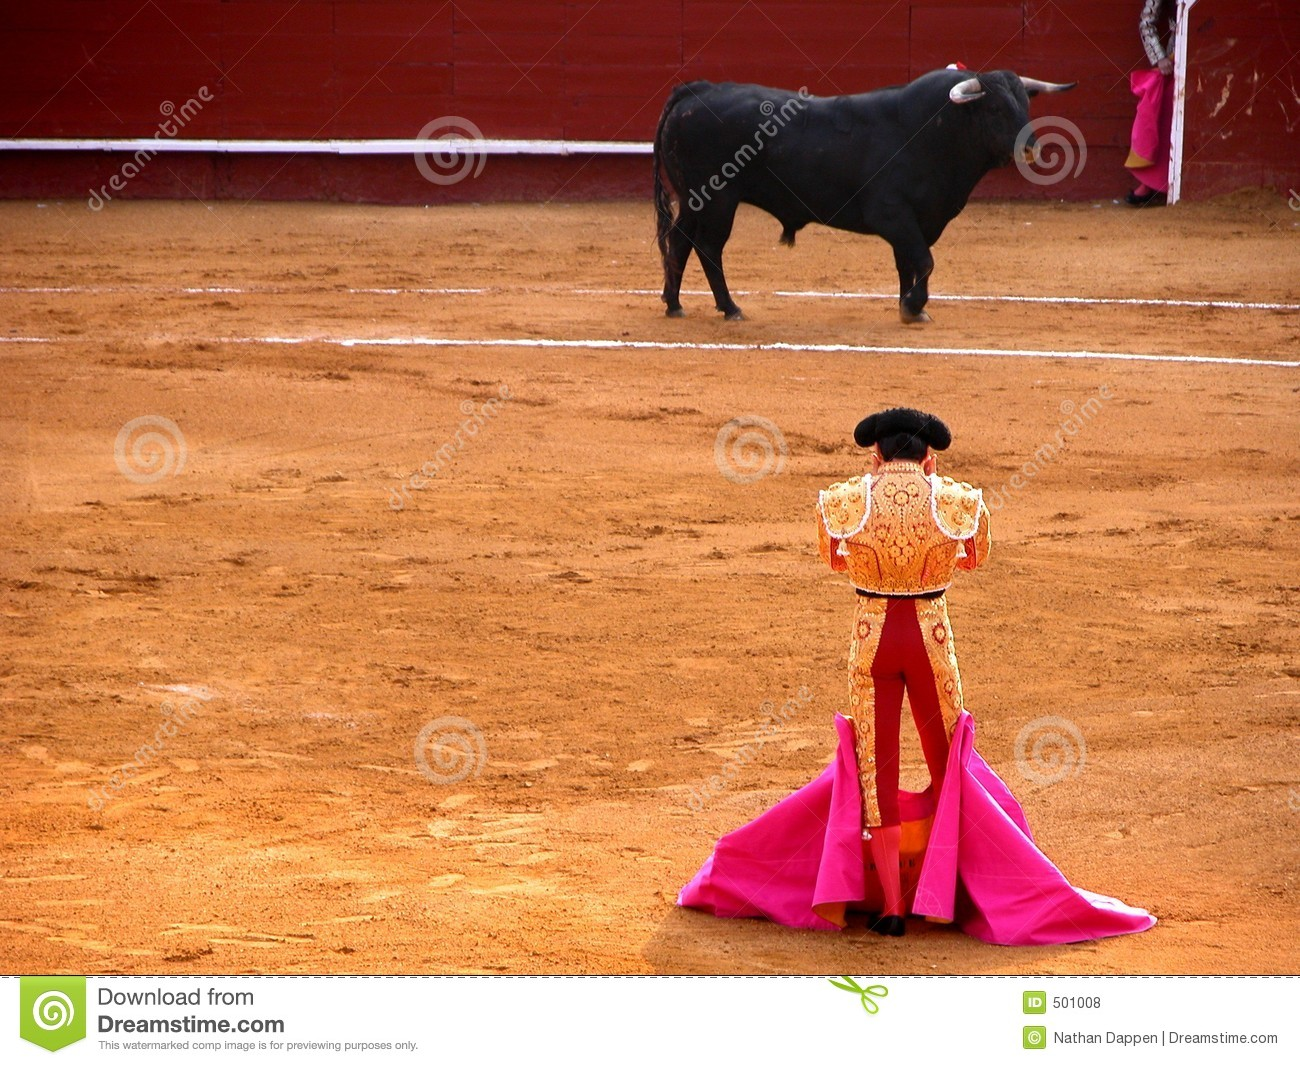 Bullfighter and bull in a standoff